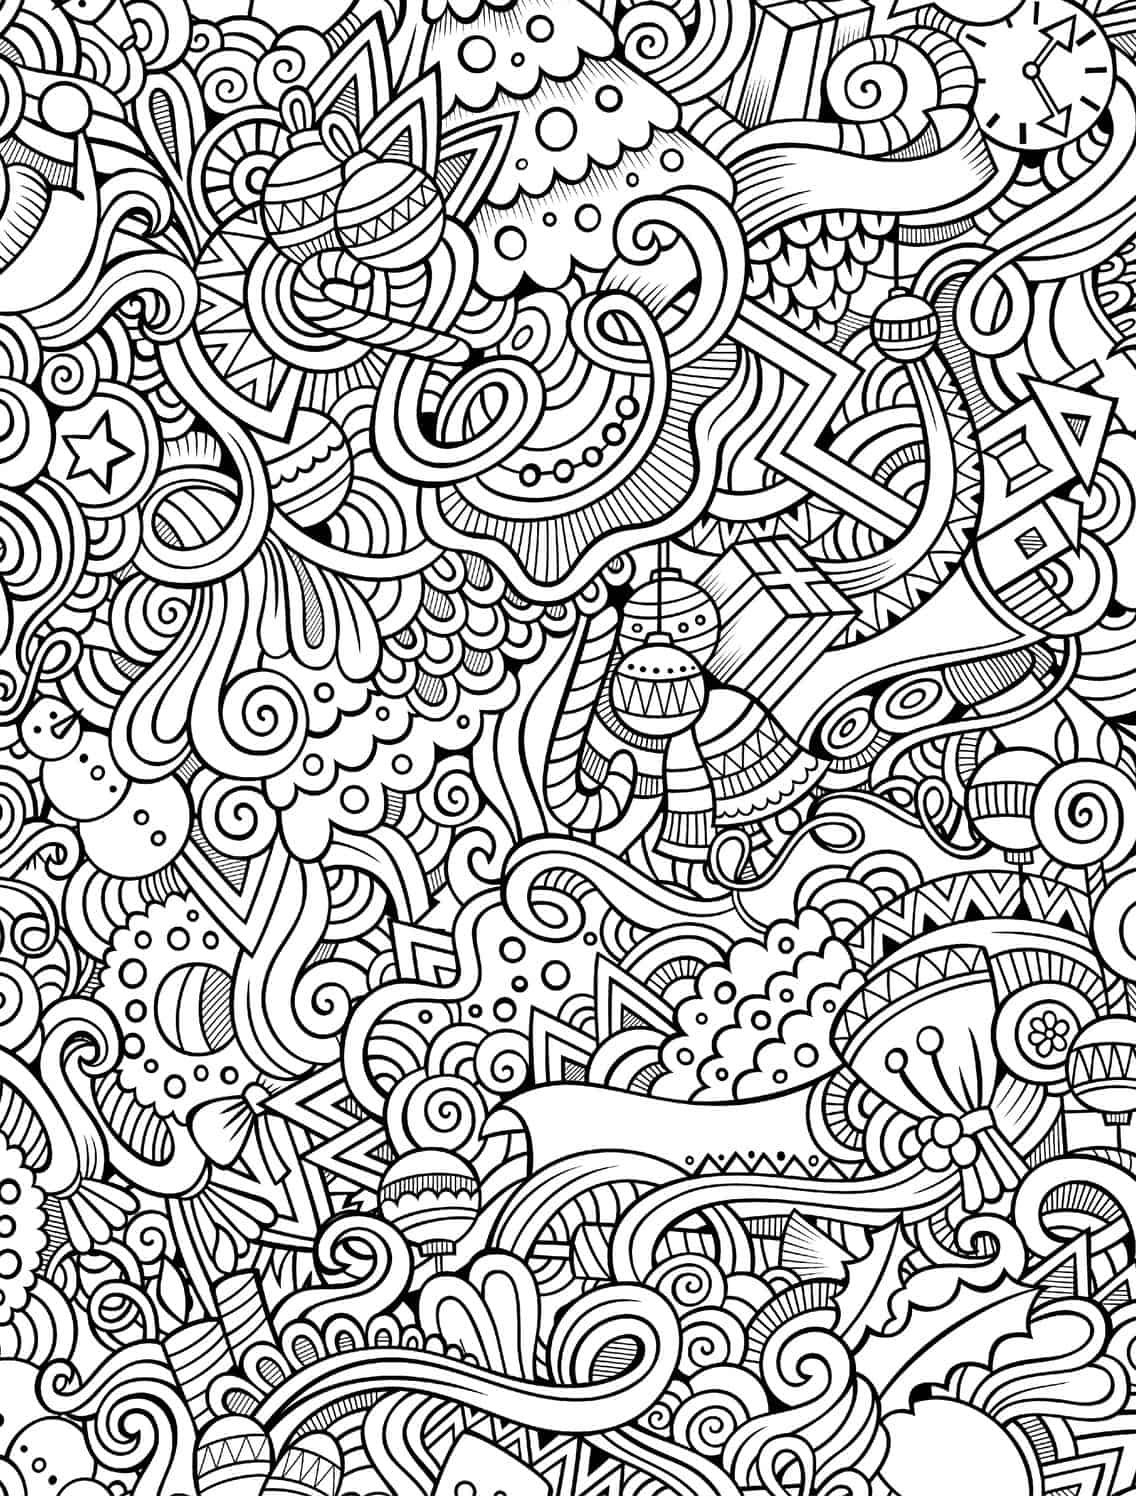 "Search Results for ""Christmas Stocking Printable Coloring Pages/page ..."